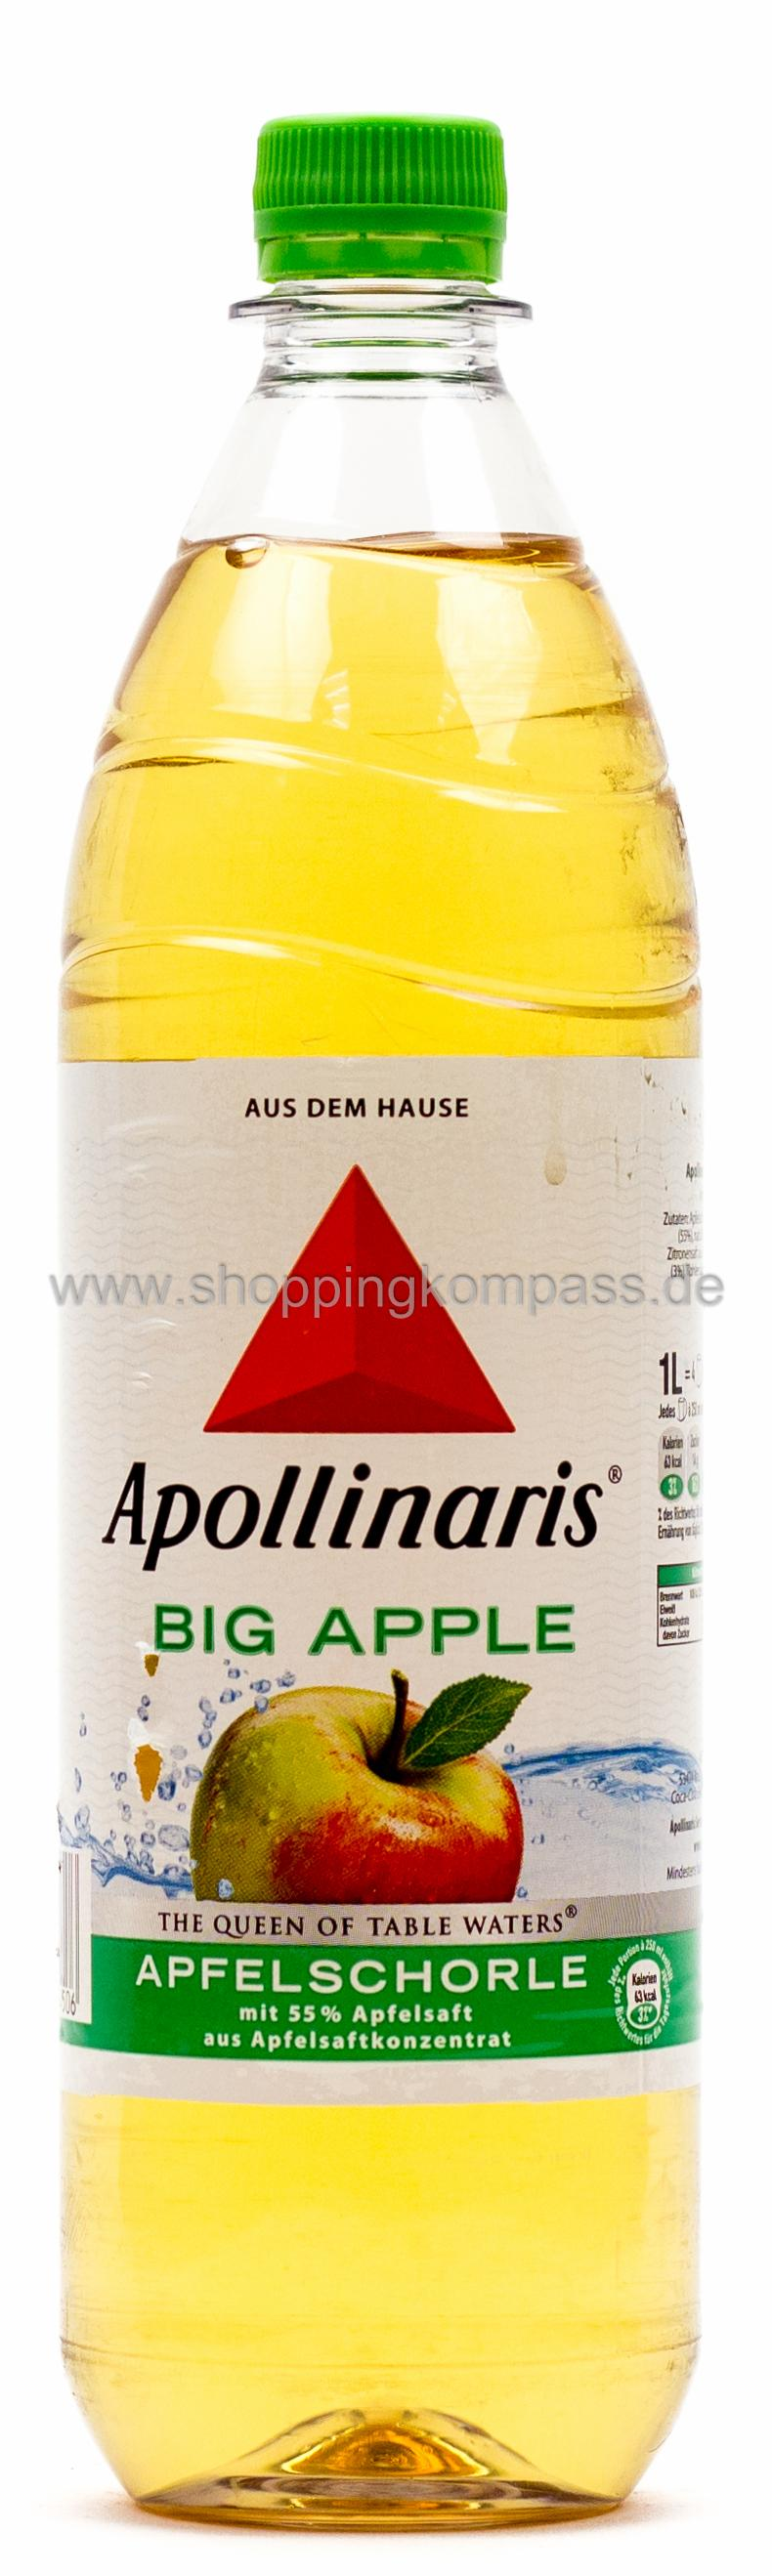 Apollinaris Apfelschorle Big Apple 1 l PET Mehrweg